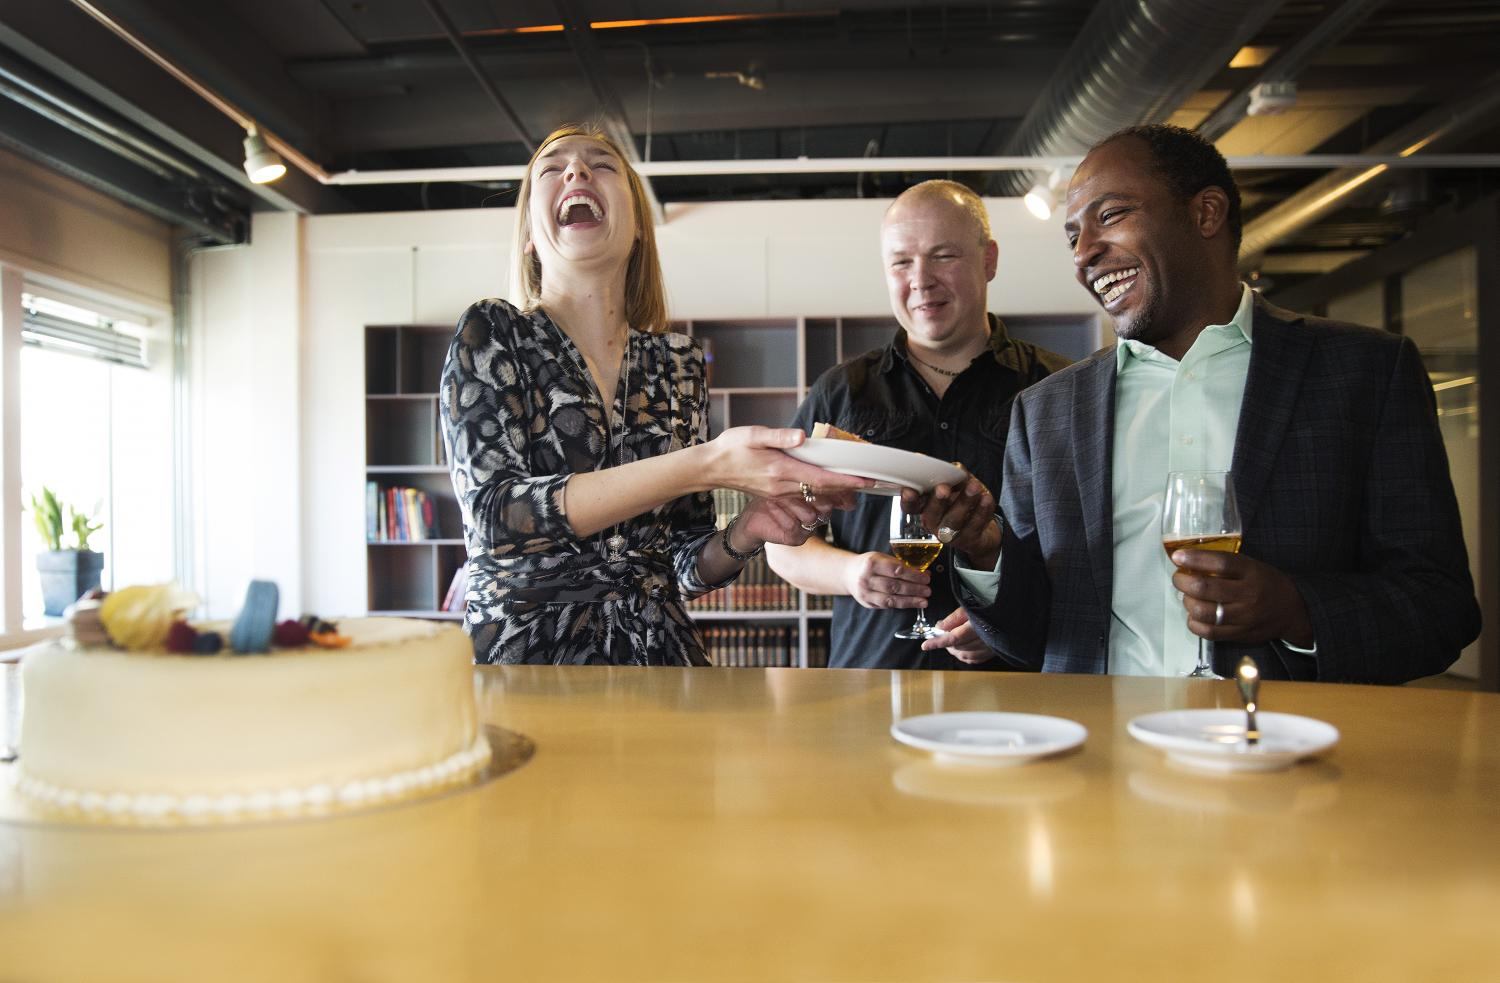 Iselin Nybø handing out cake to Leon Moonen and Ahmed Elmokashfi (Photo: Sverre Christian Jarild)